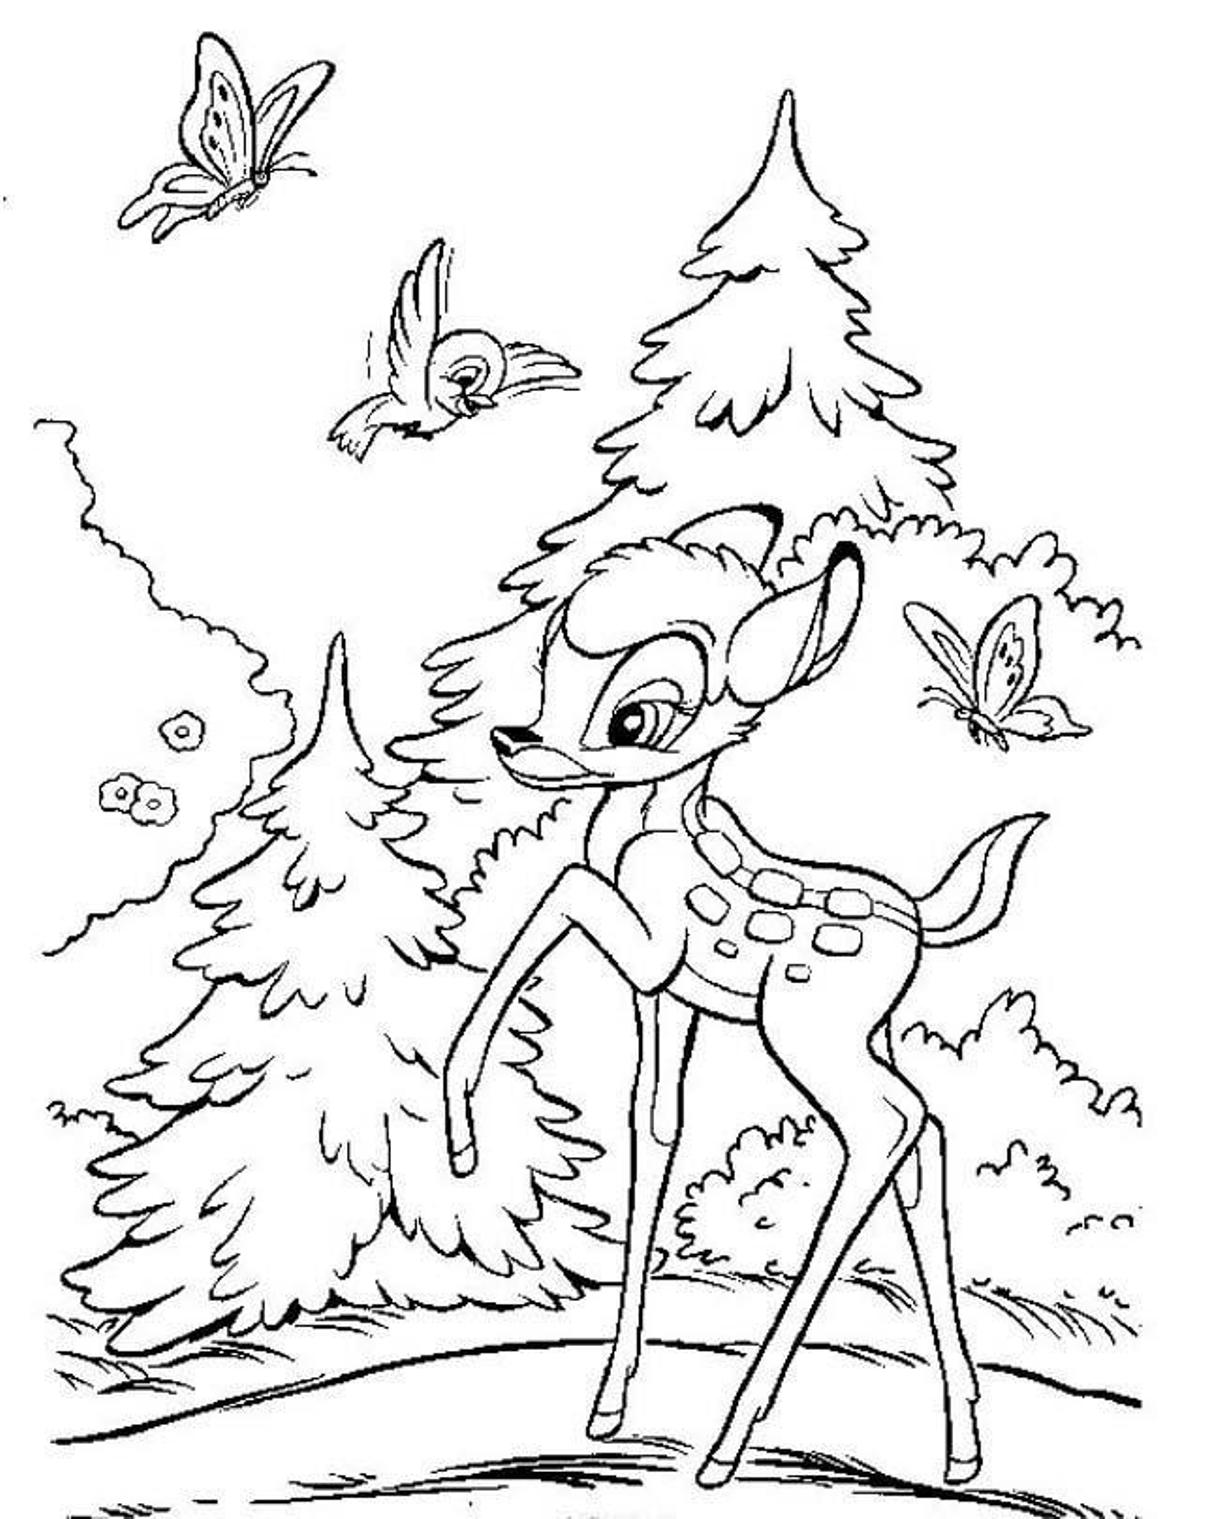 bambi coloring book bambi coloring pages 3 disney39s world of wonders book coloring bambi